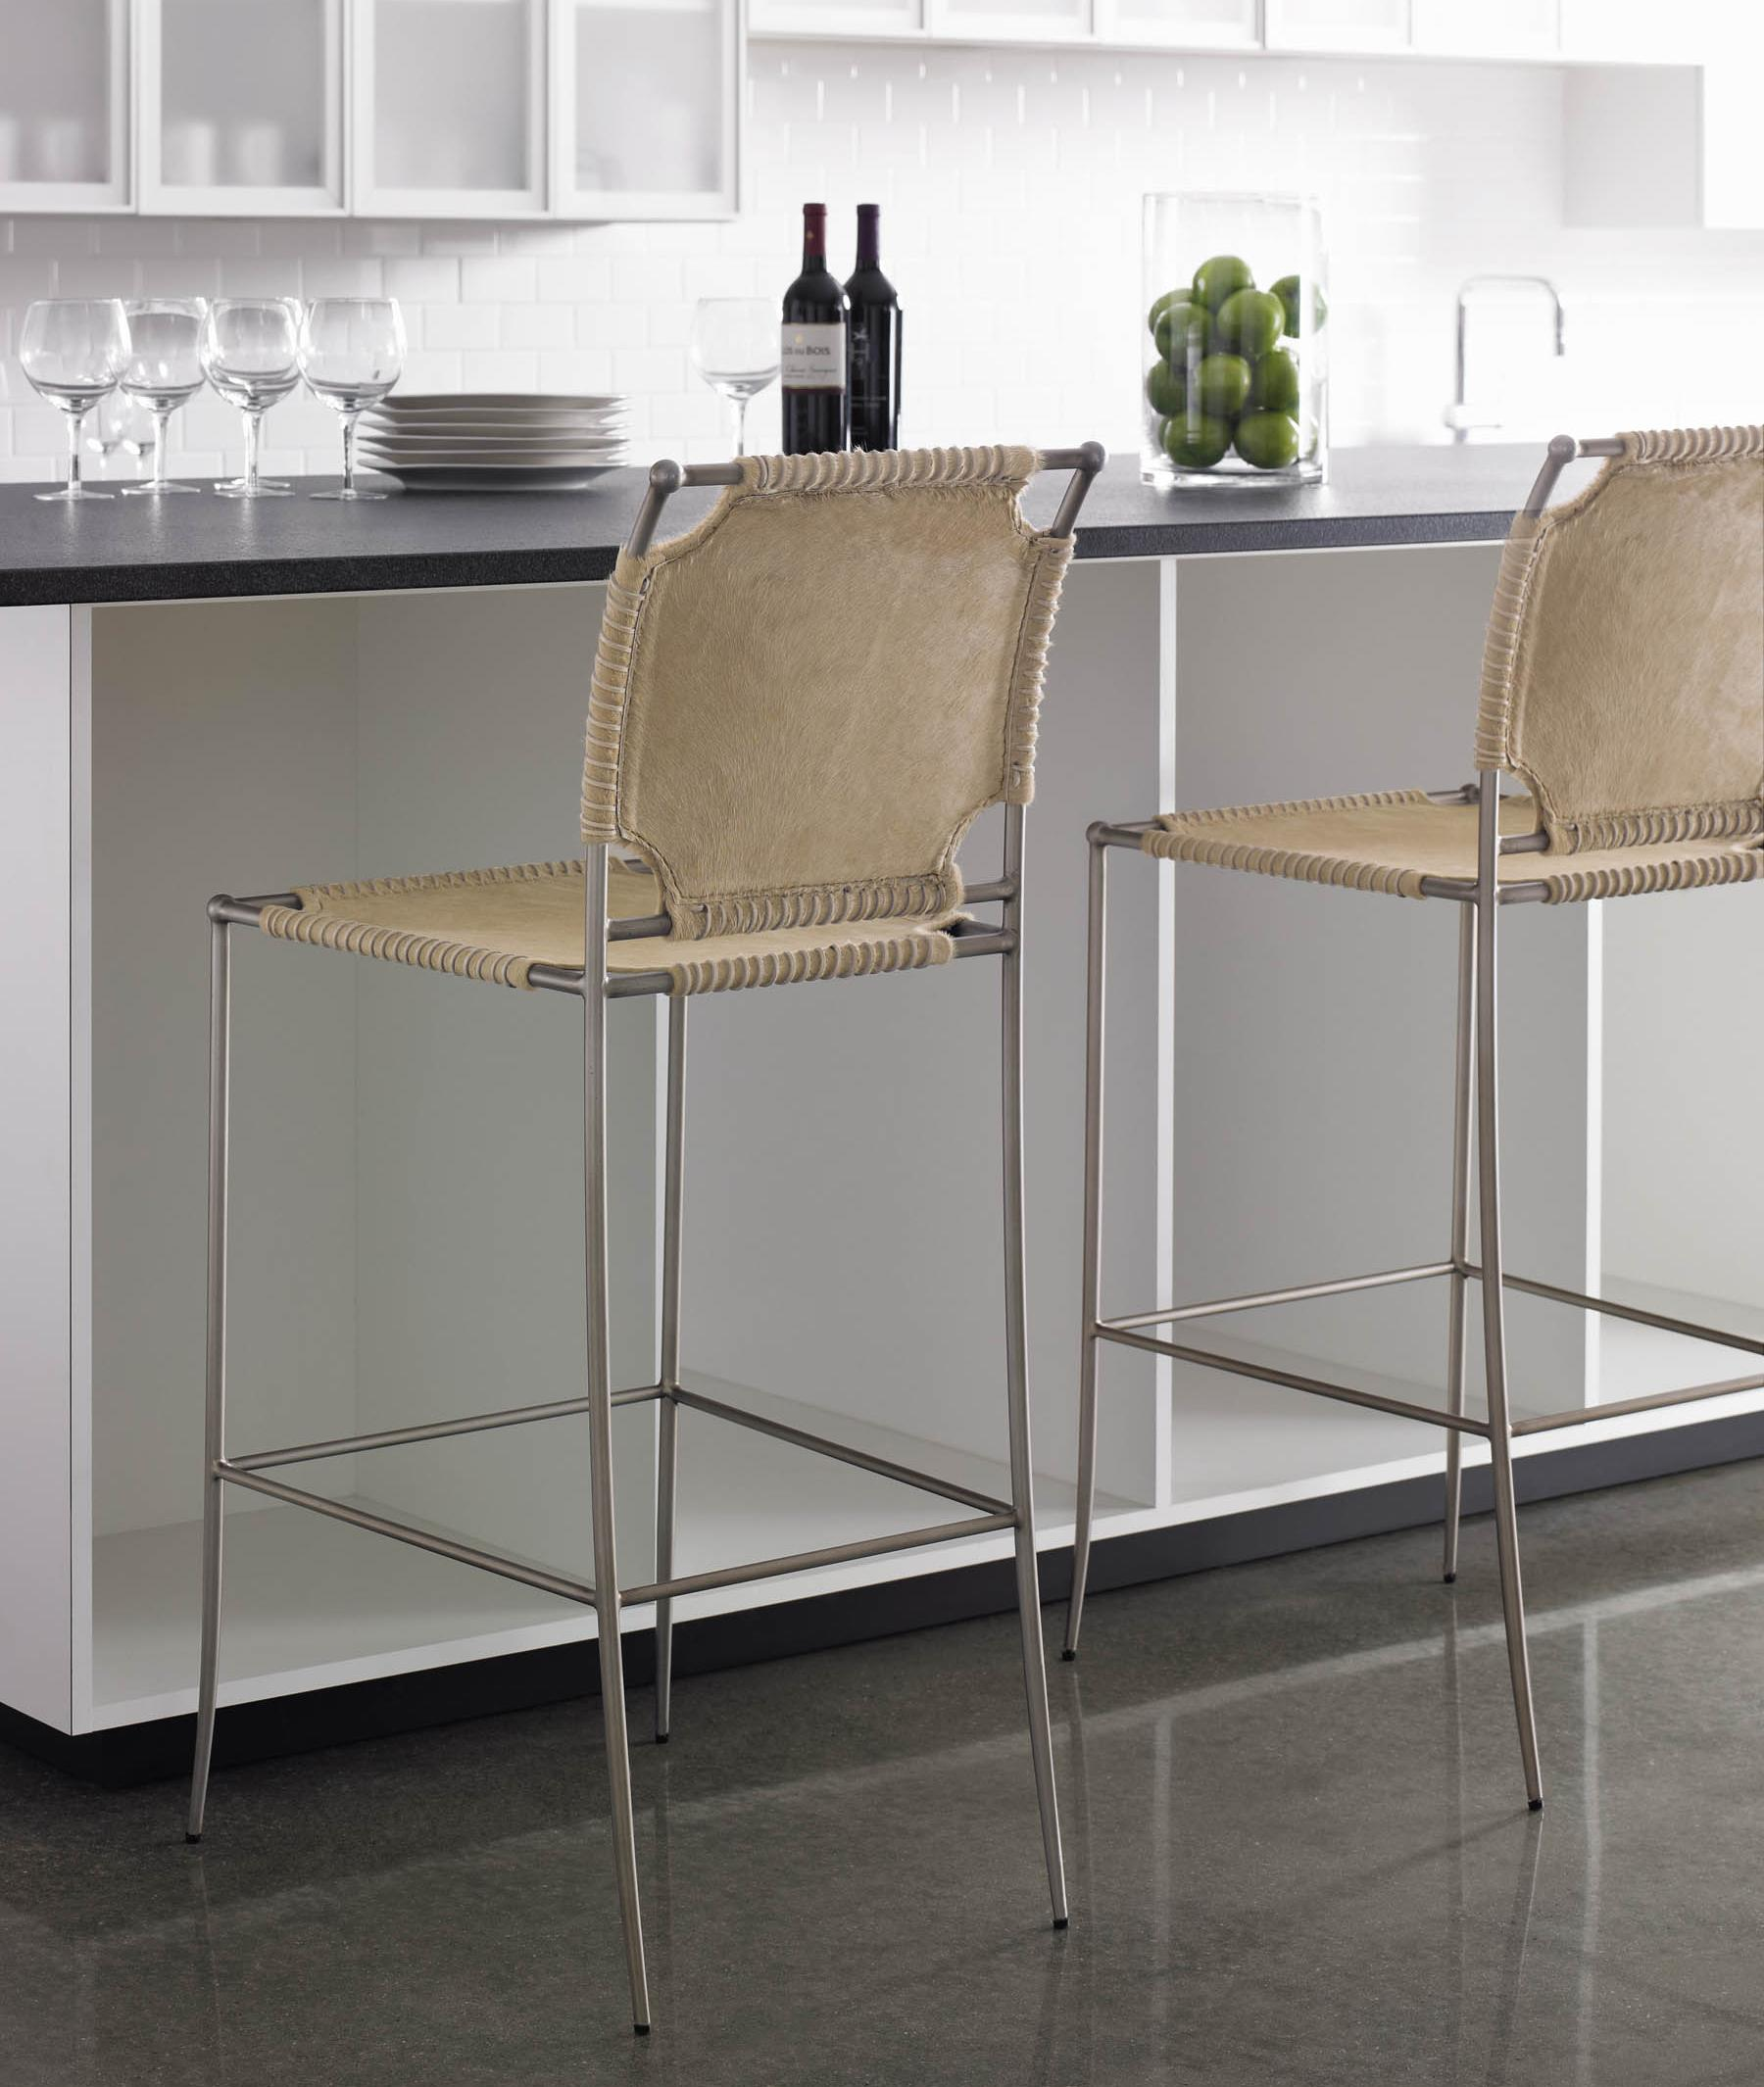 Freedom Furniture Kitchen Stools 6 Non Replica Breakfast Bar Stools The Interiors Addict